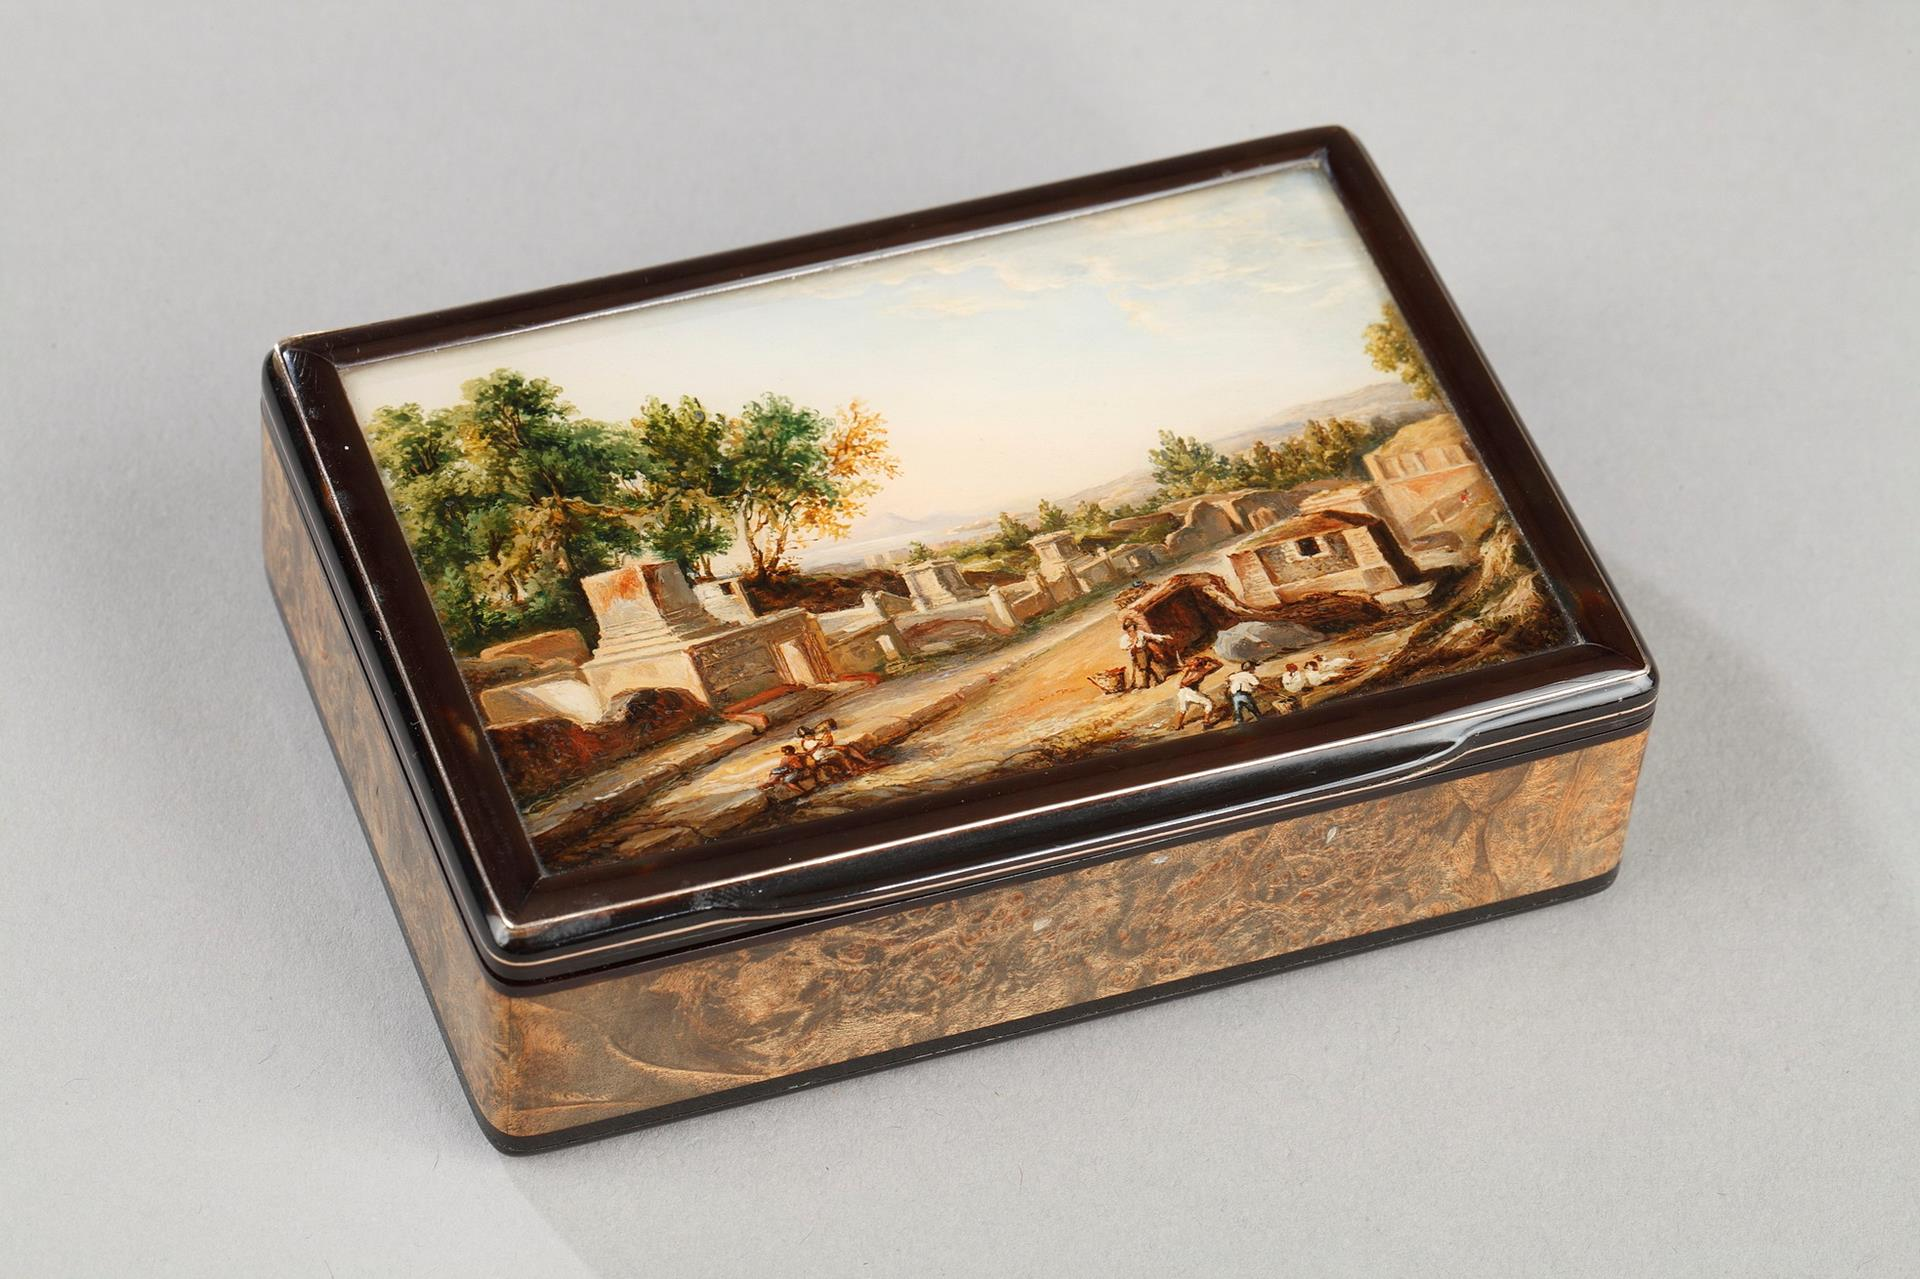 19th Tortoishell box with fixé sous verre and Eglomised glass. Early 19th century.